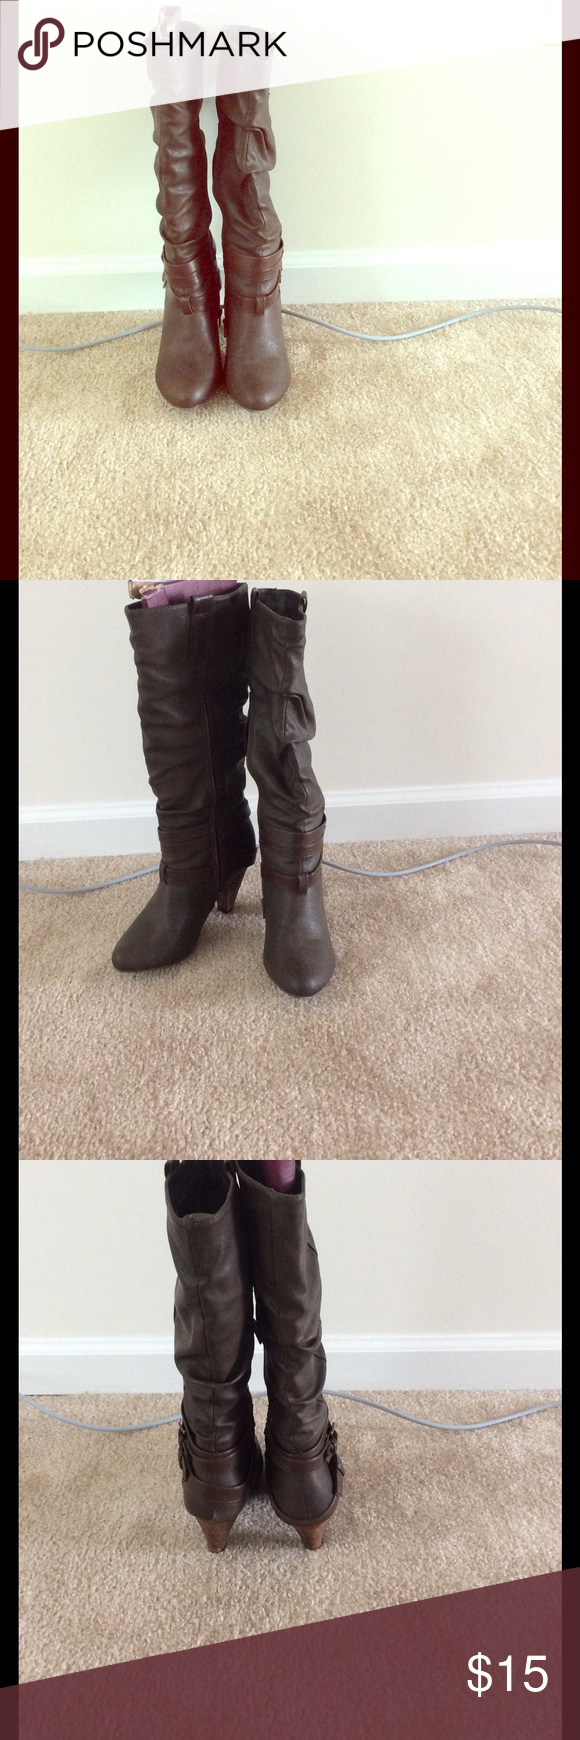 Heel boots In good condition, 3inch heel. Very comfortable! Charlotte Russe Shoes Heeled Boots